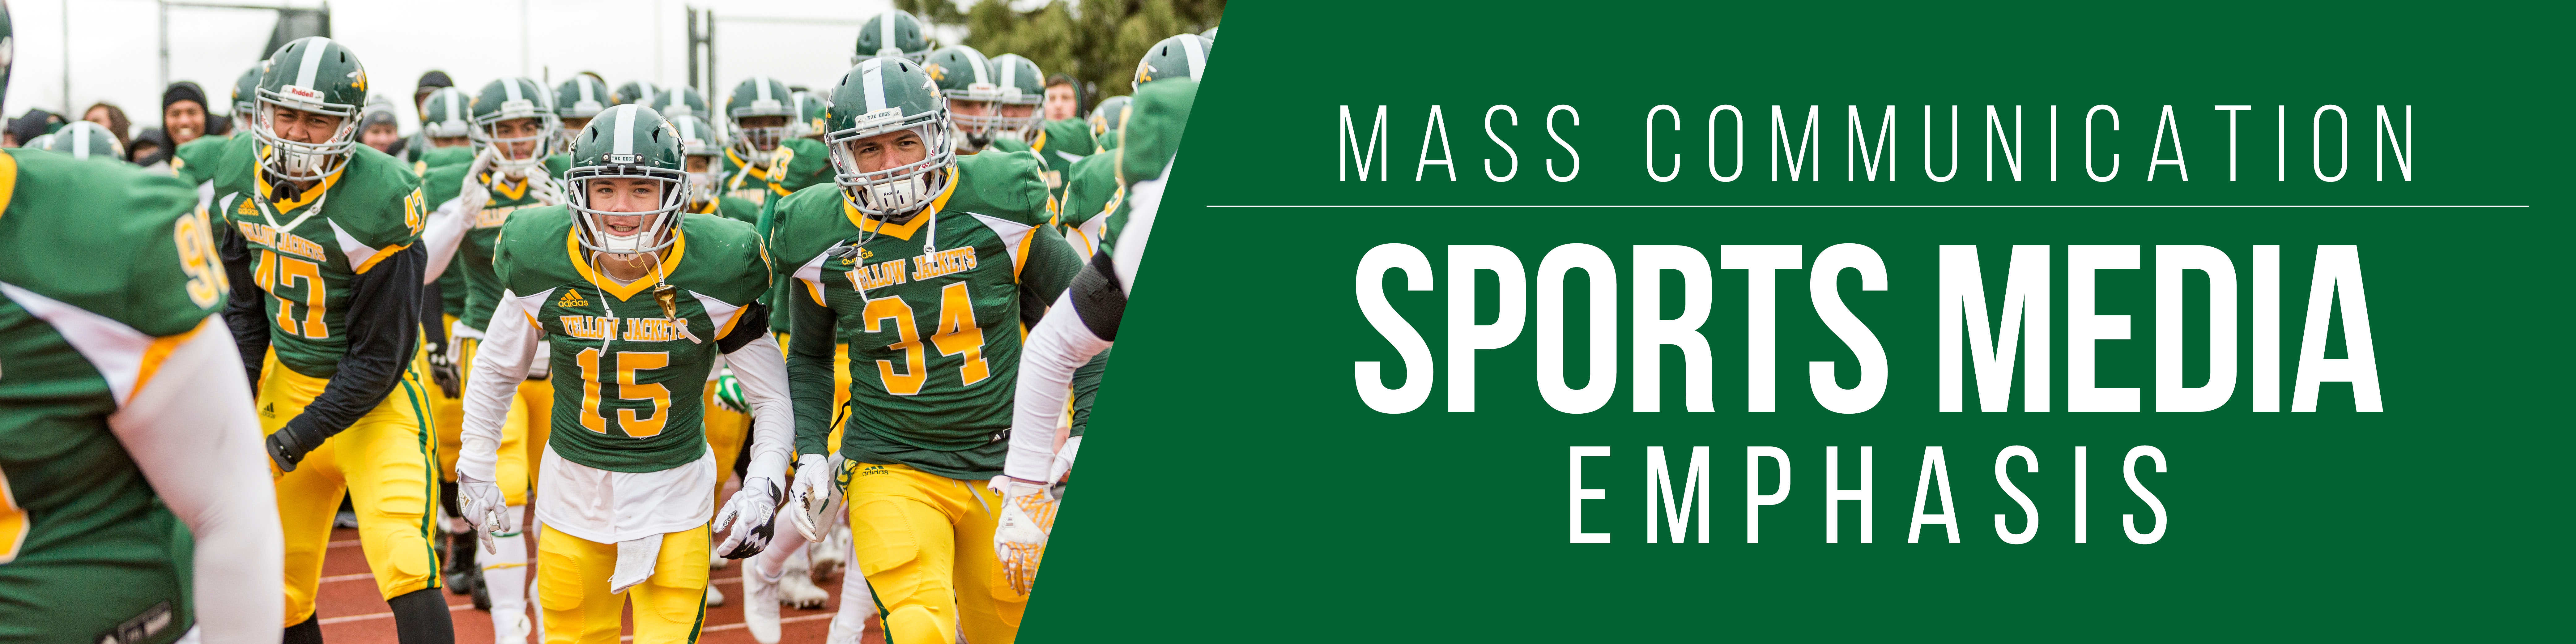 MassCommSportsMedia2018